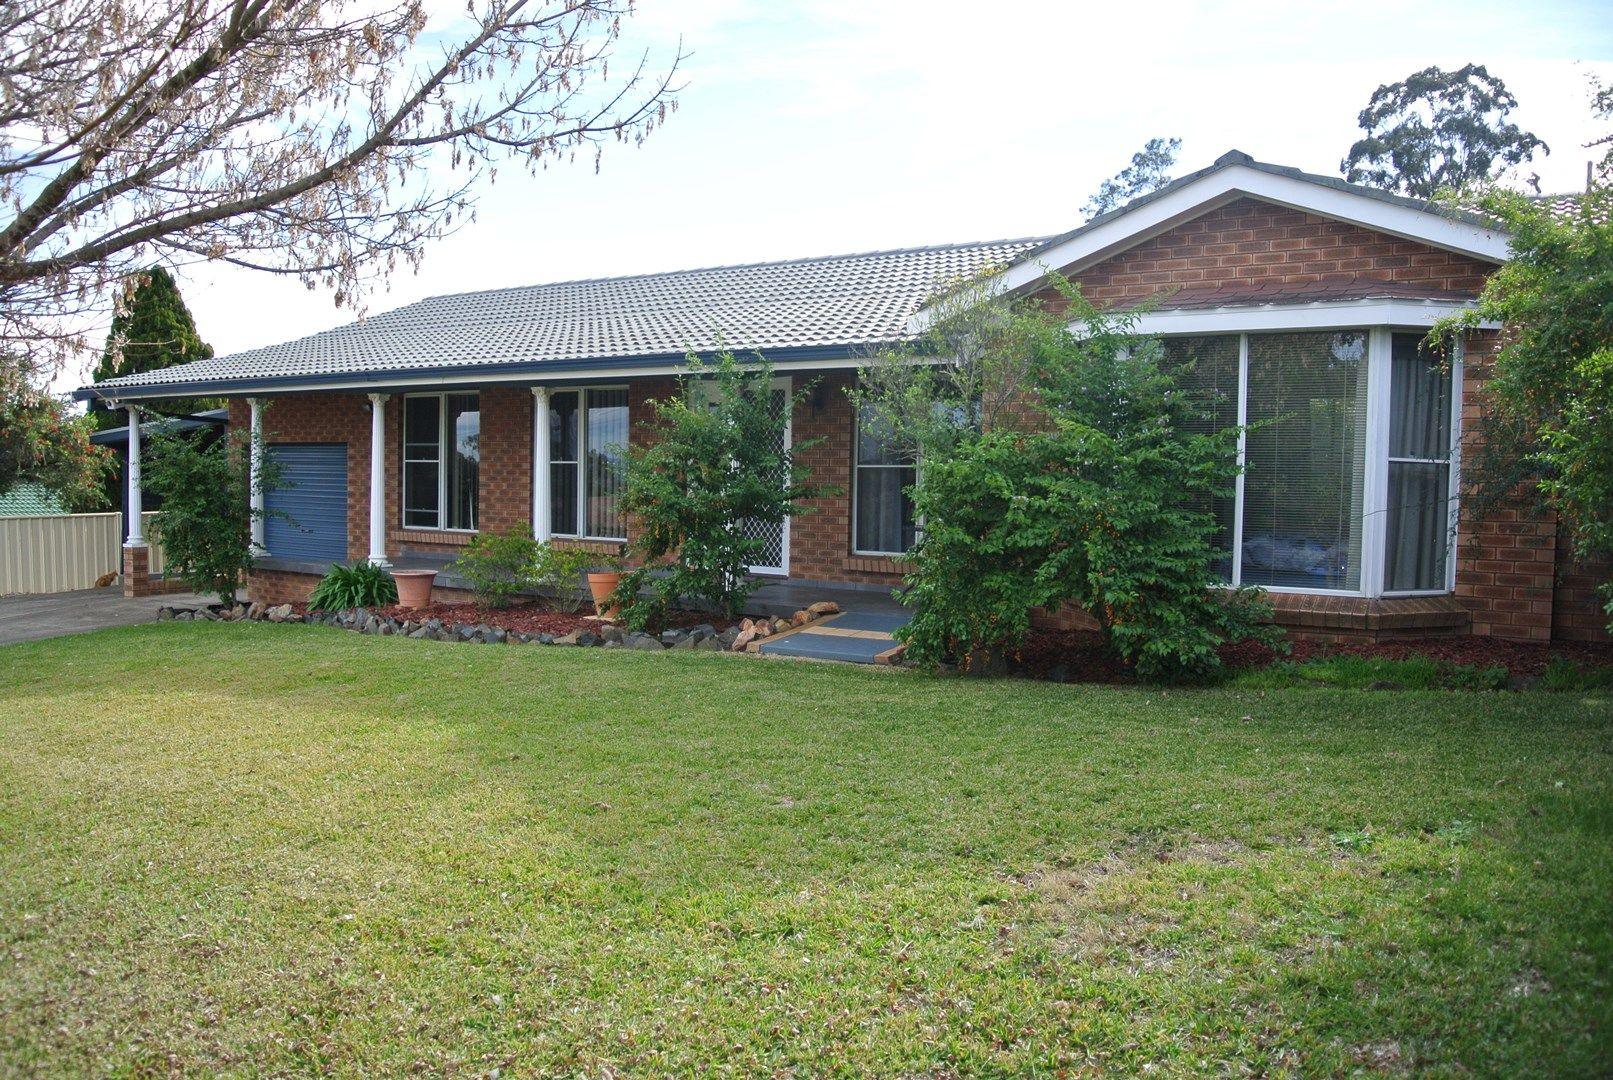 106 St Andrews St, Aberdeen NSW 2336, Image 0